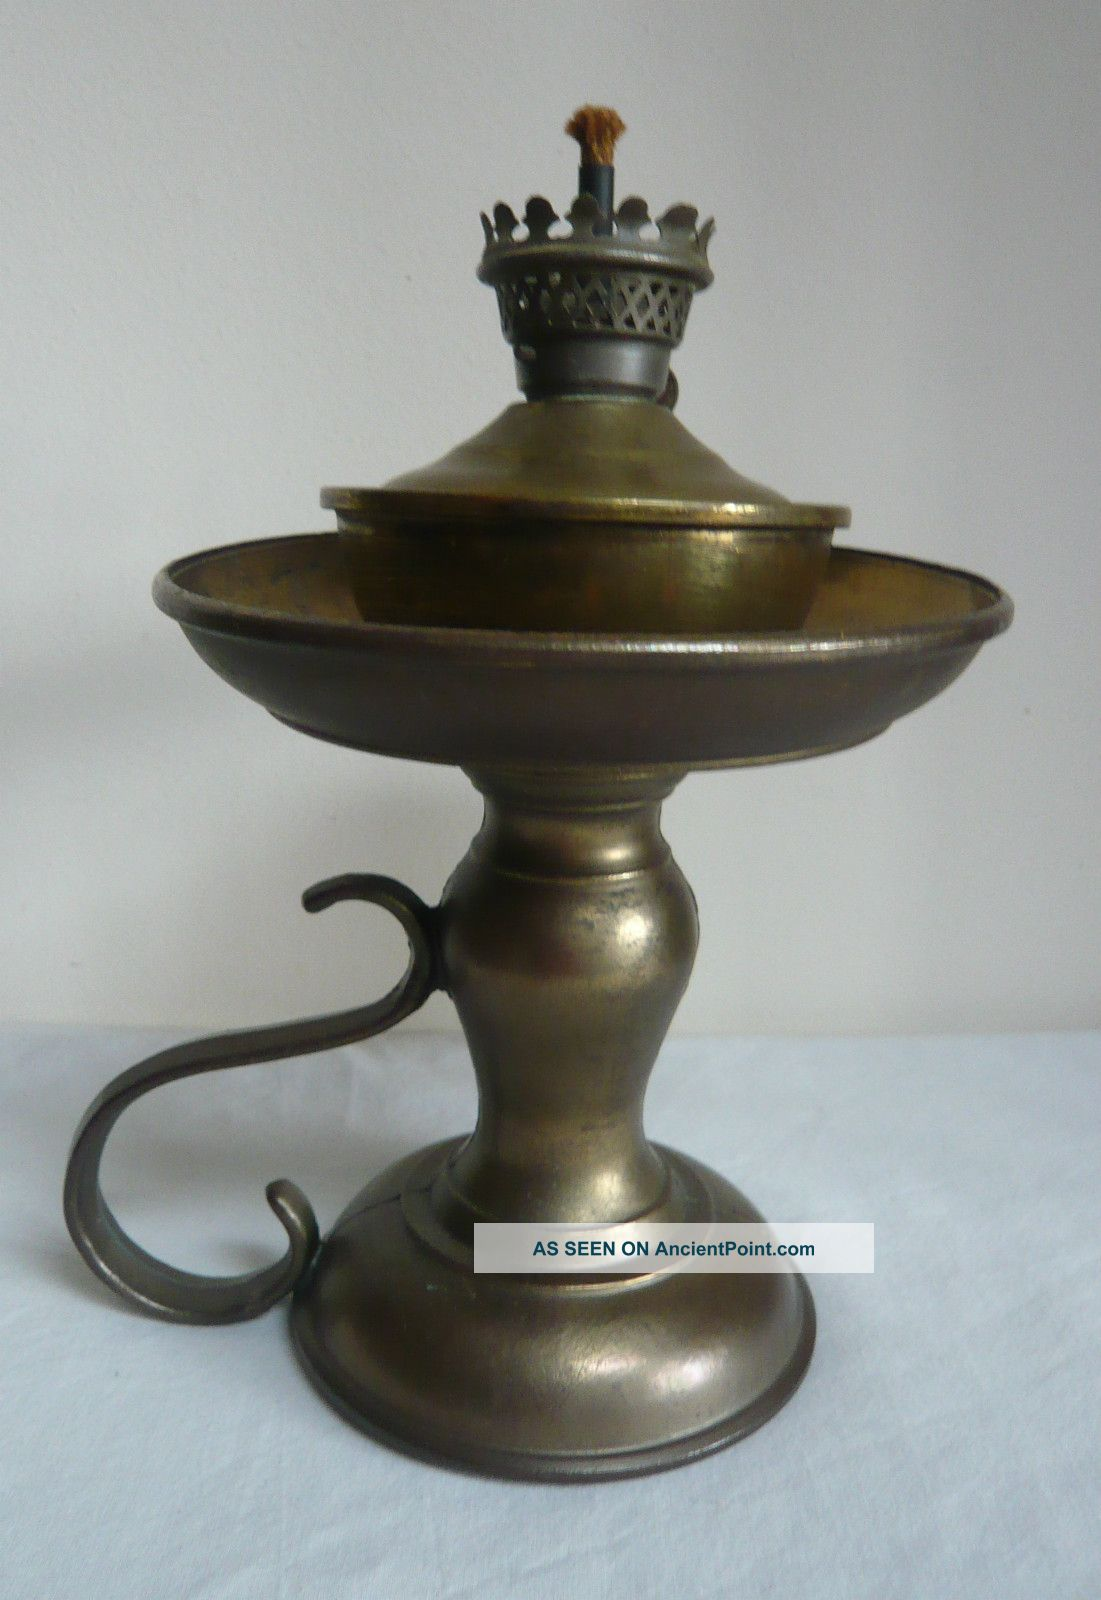 Old Antique Brass Oil Lamp Burner With Holder.  Seamed.  2 Parts.  With Handle. 20th Century photo